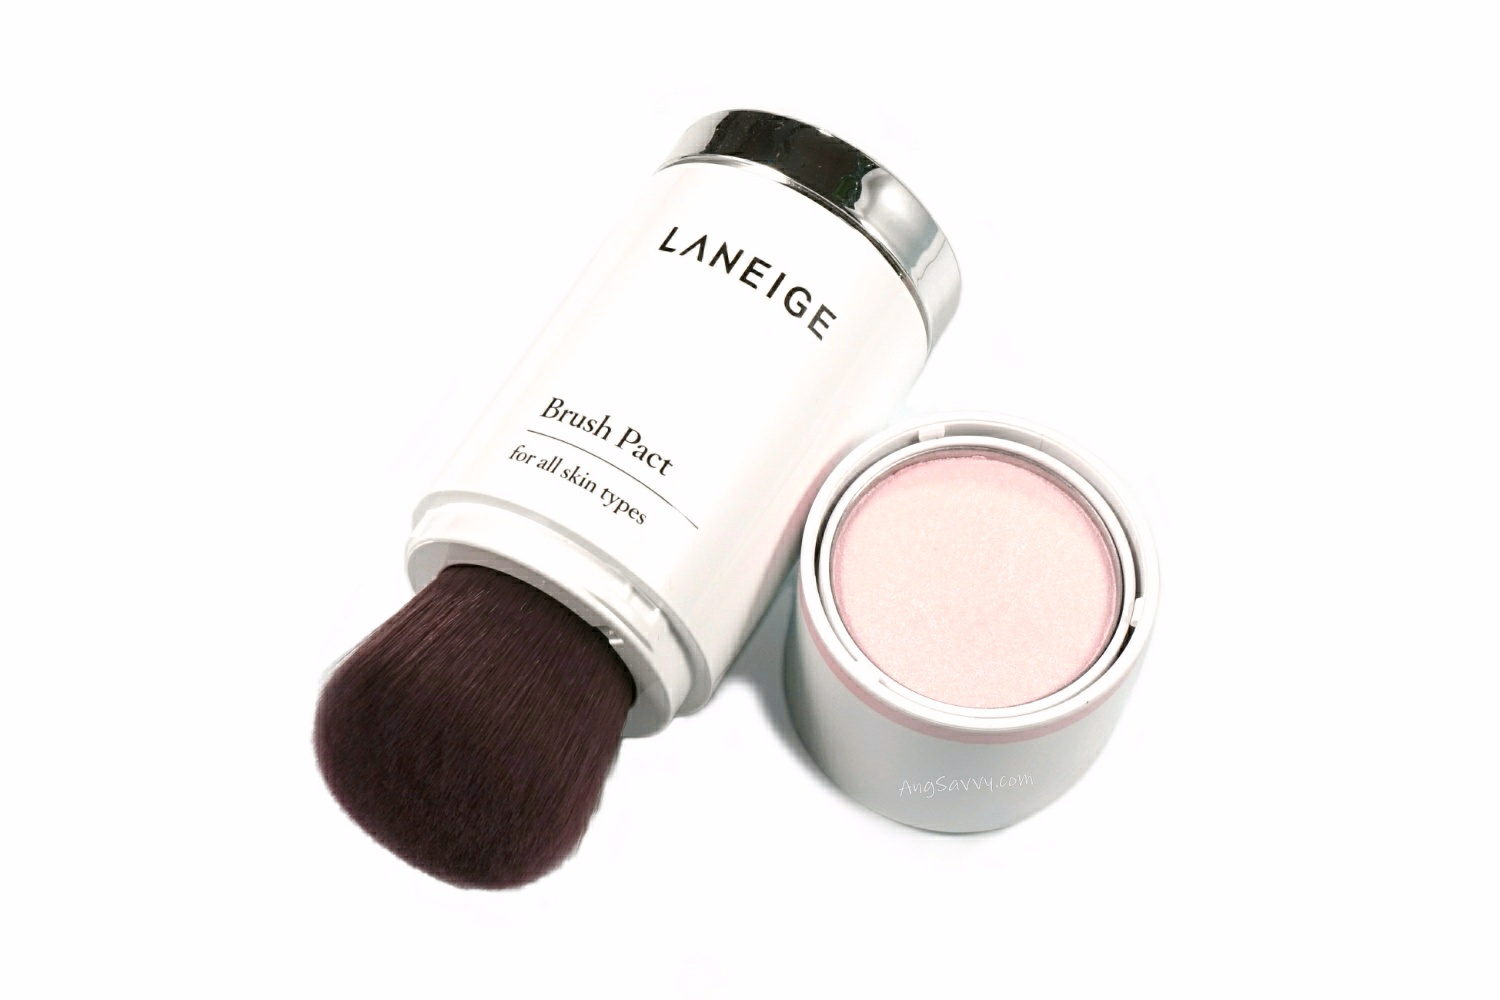 Laneige Brush Pact Pink Beam